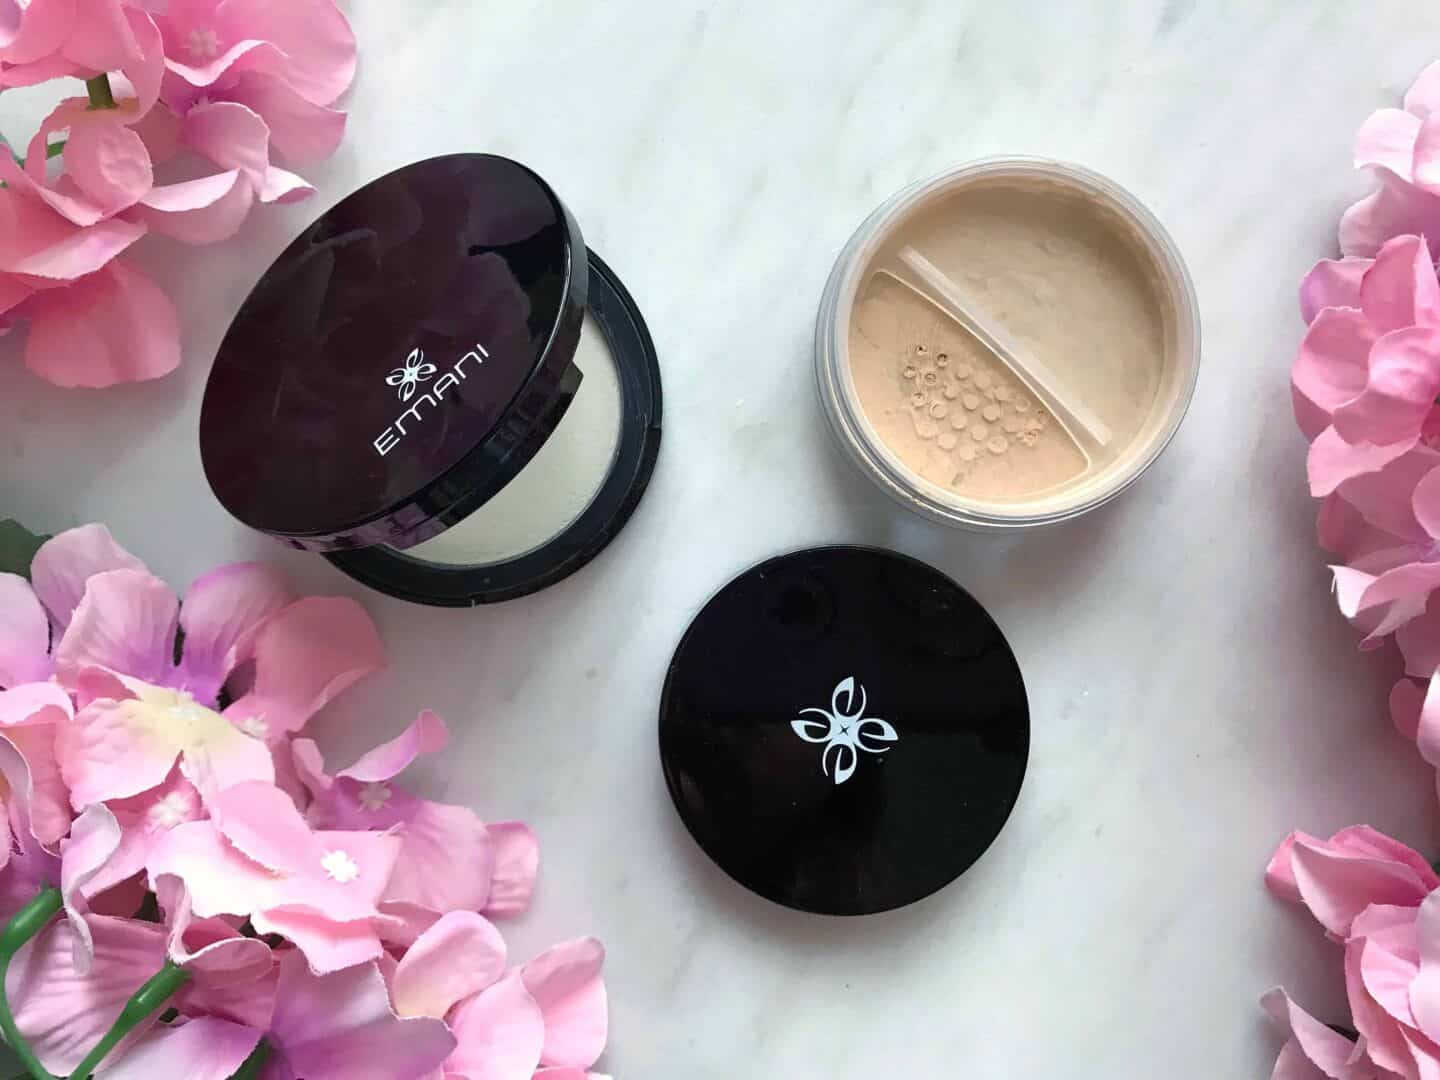 Emani Vegan Cosmetics Perfecting Crushed Foundation and Mattifying Powder Bye Bye Shine Review